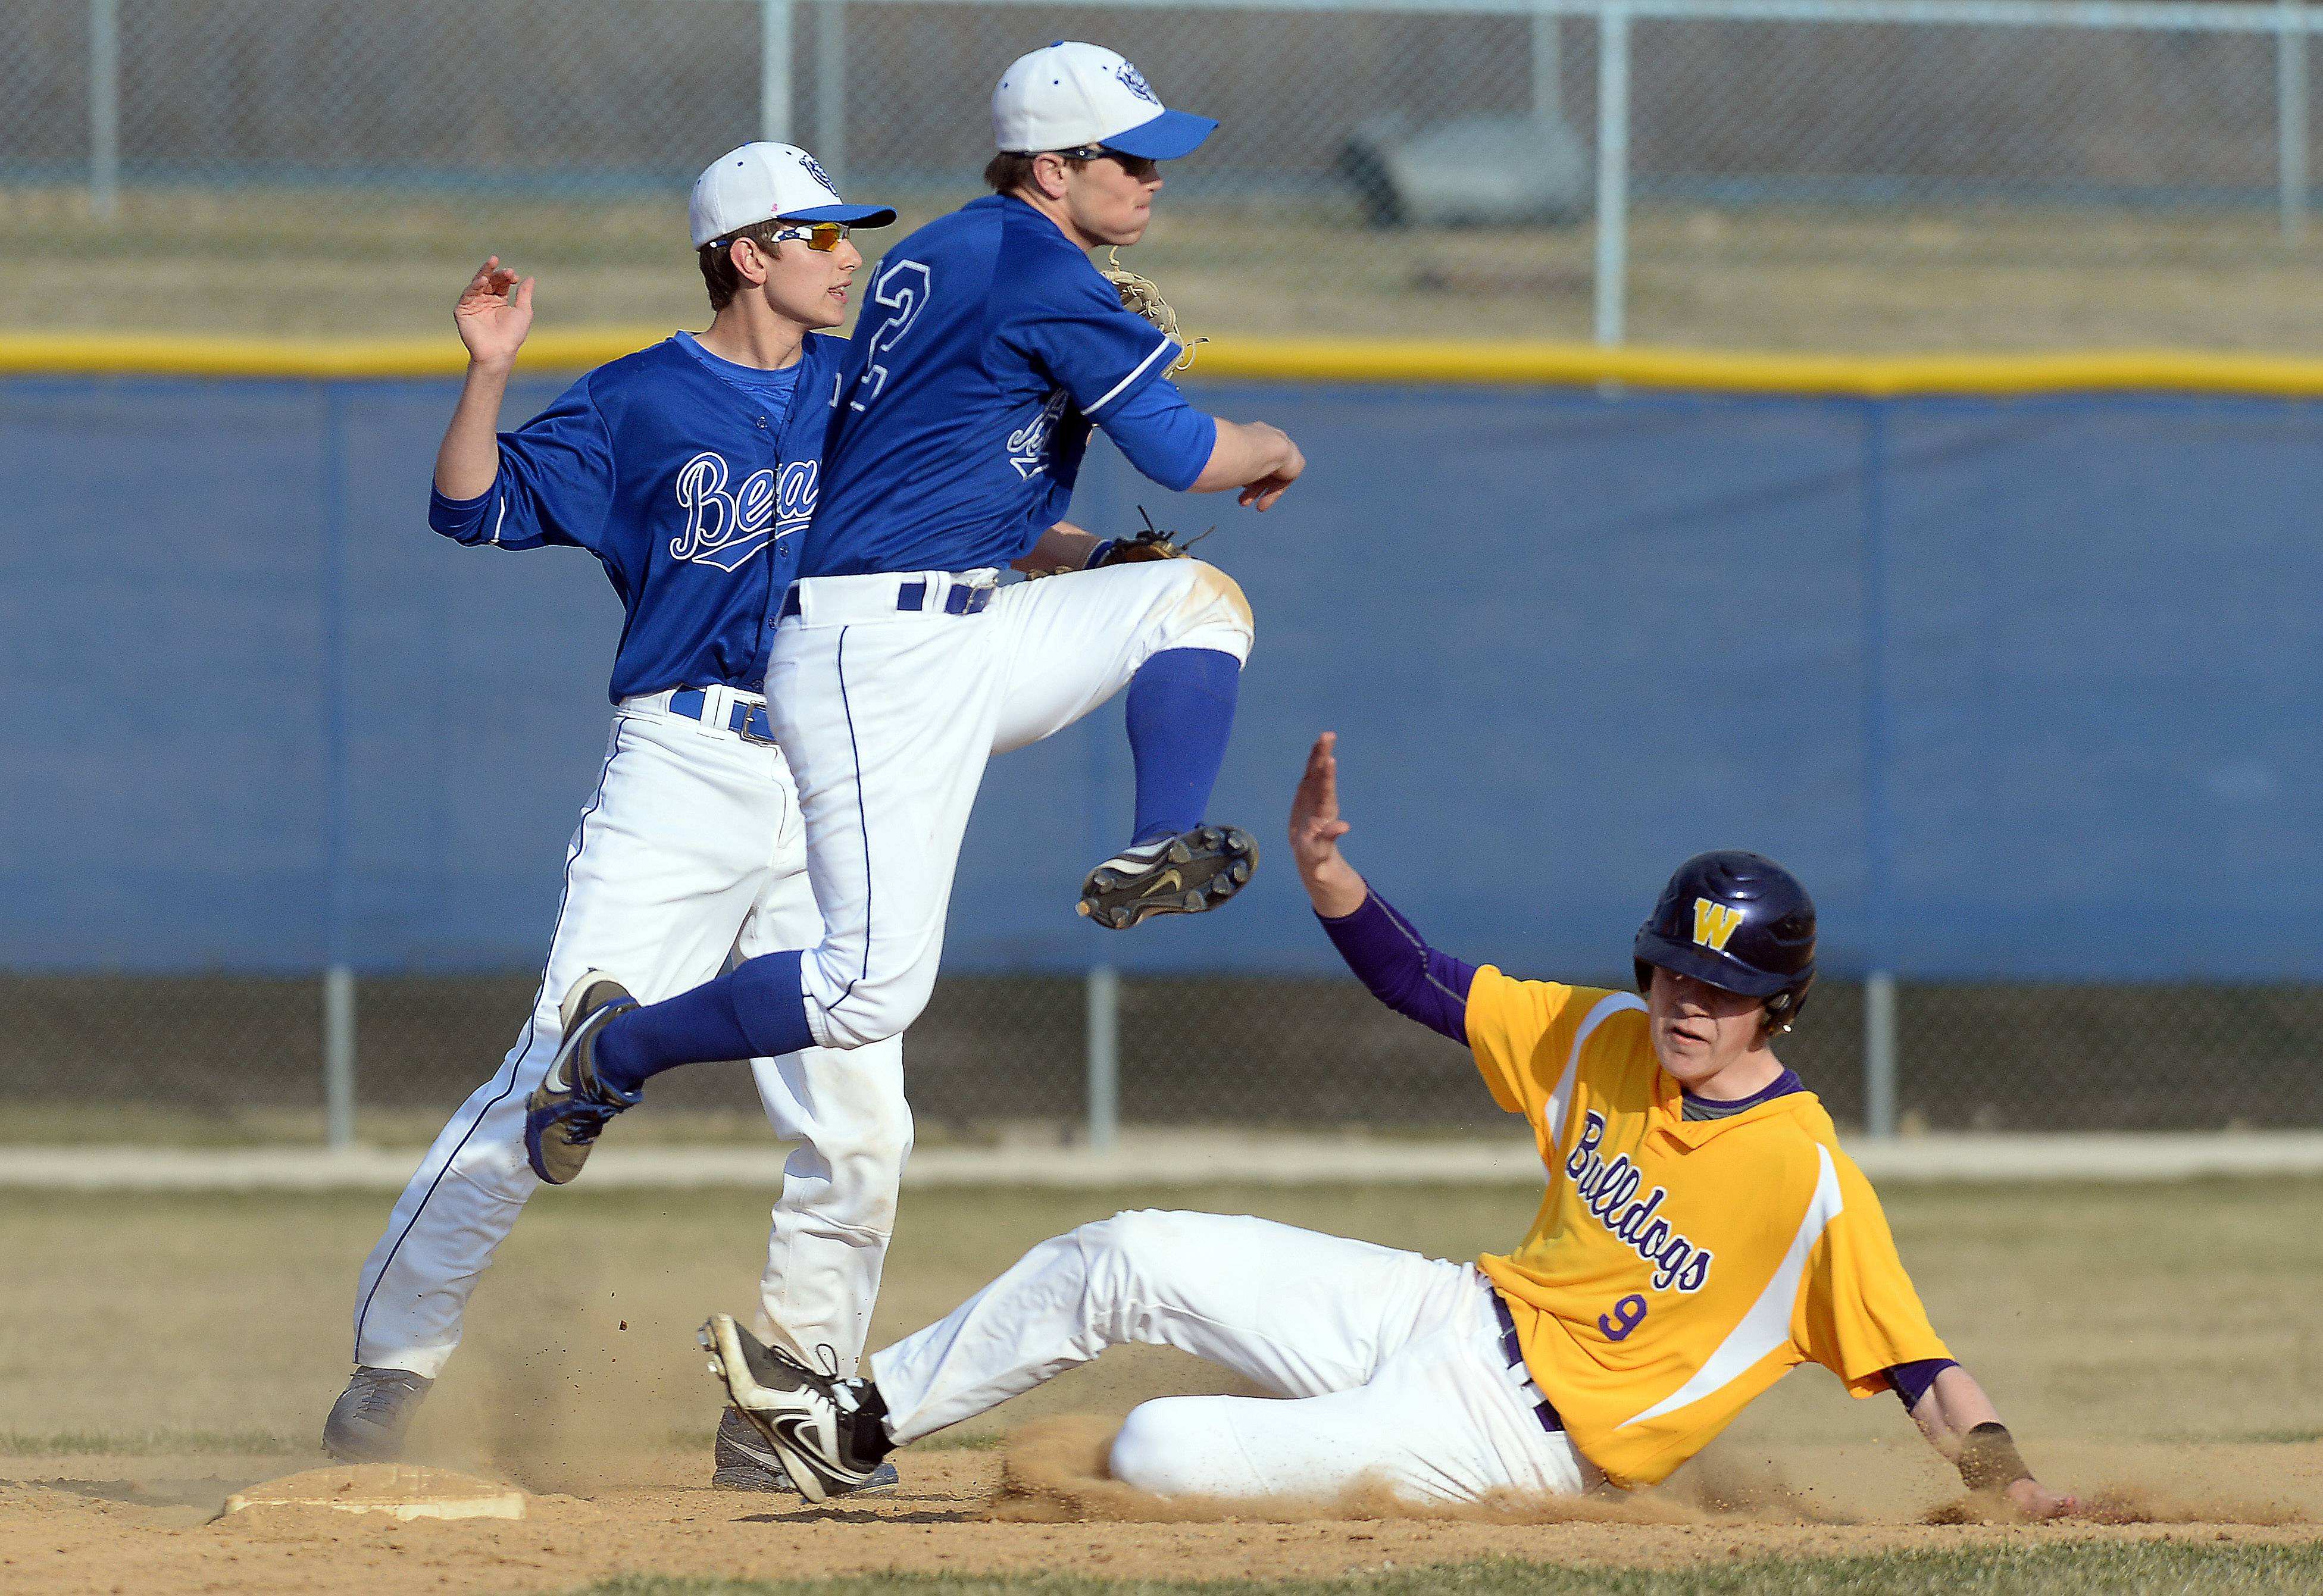 Lake Zurich shortstop Danny Neises throws to first after forcing out Wauconda's Kevin Malisheski at second on a sequence started by Wauconda's Mitchell Sharkey on Friday at Lake Zurich.